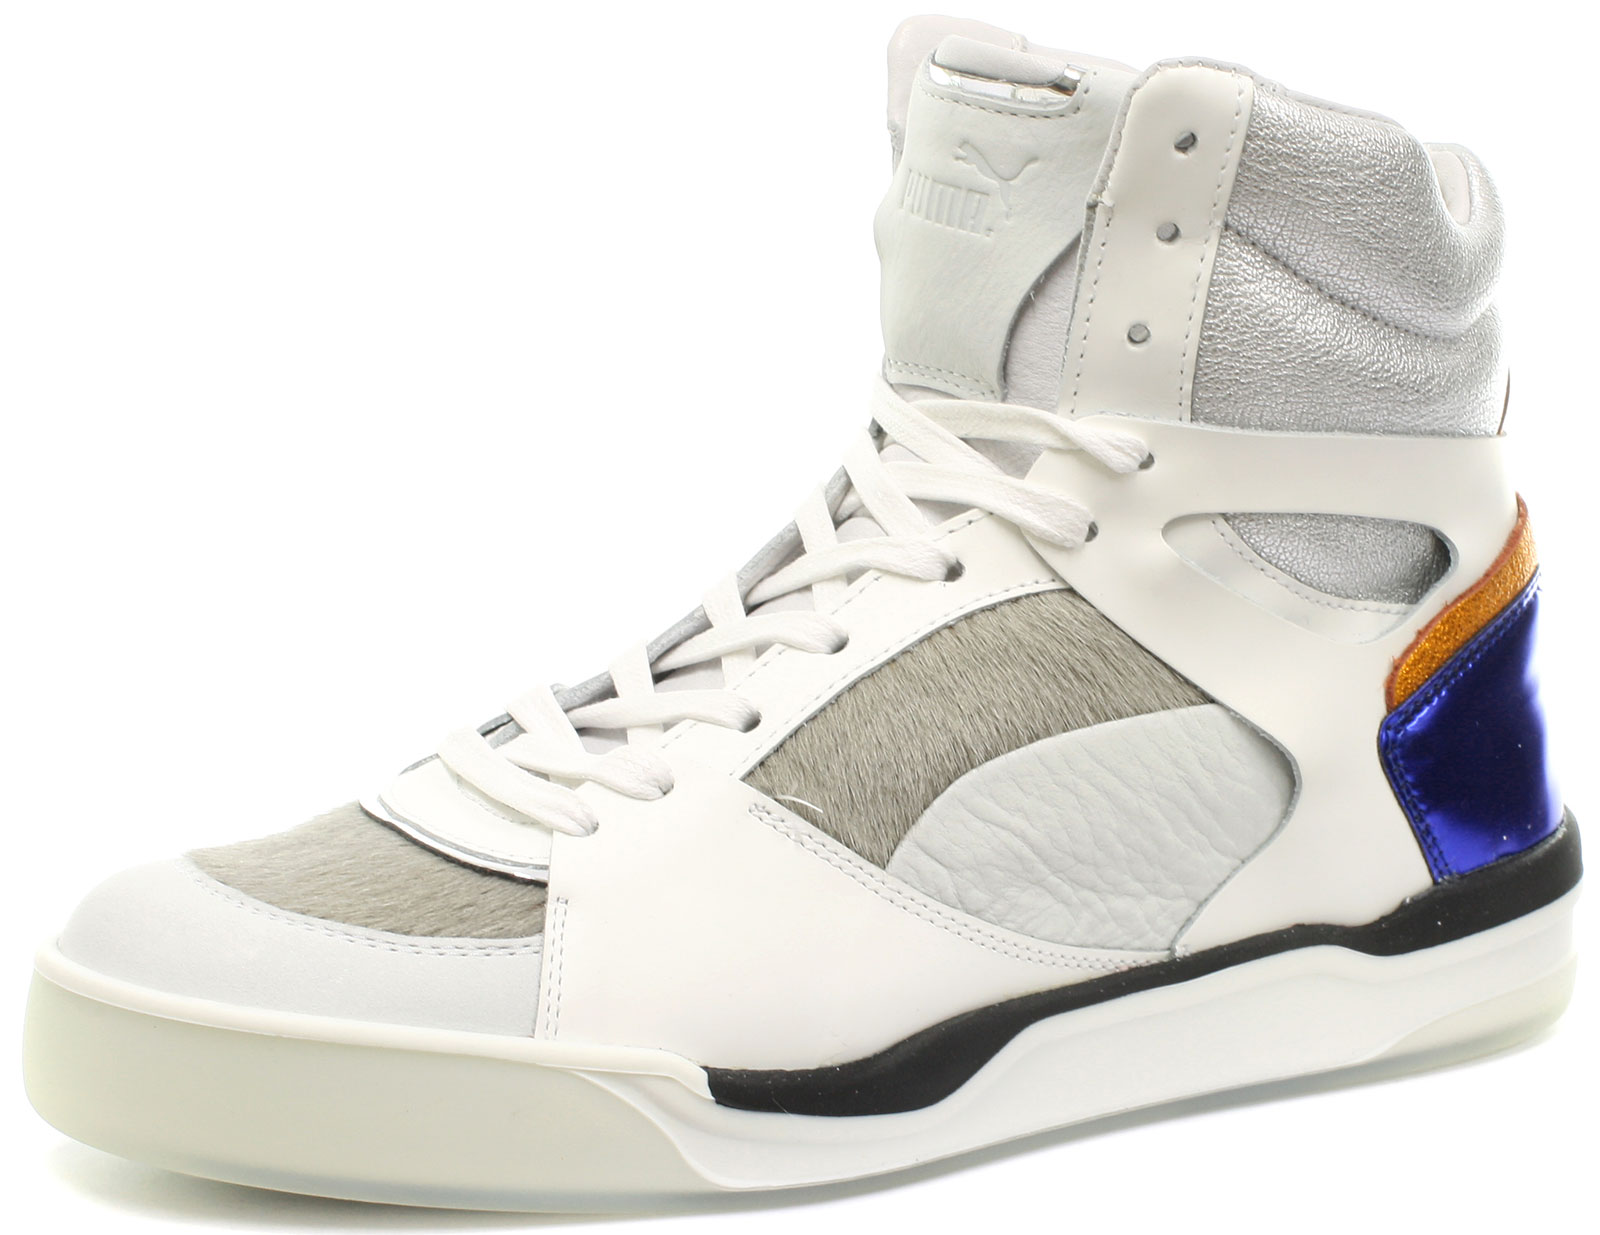 Mcqueen Trainers All Femme Alexander Womens Mid Puma Mcq Move Wht Sizes aBq58wg8